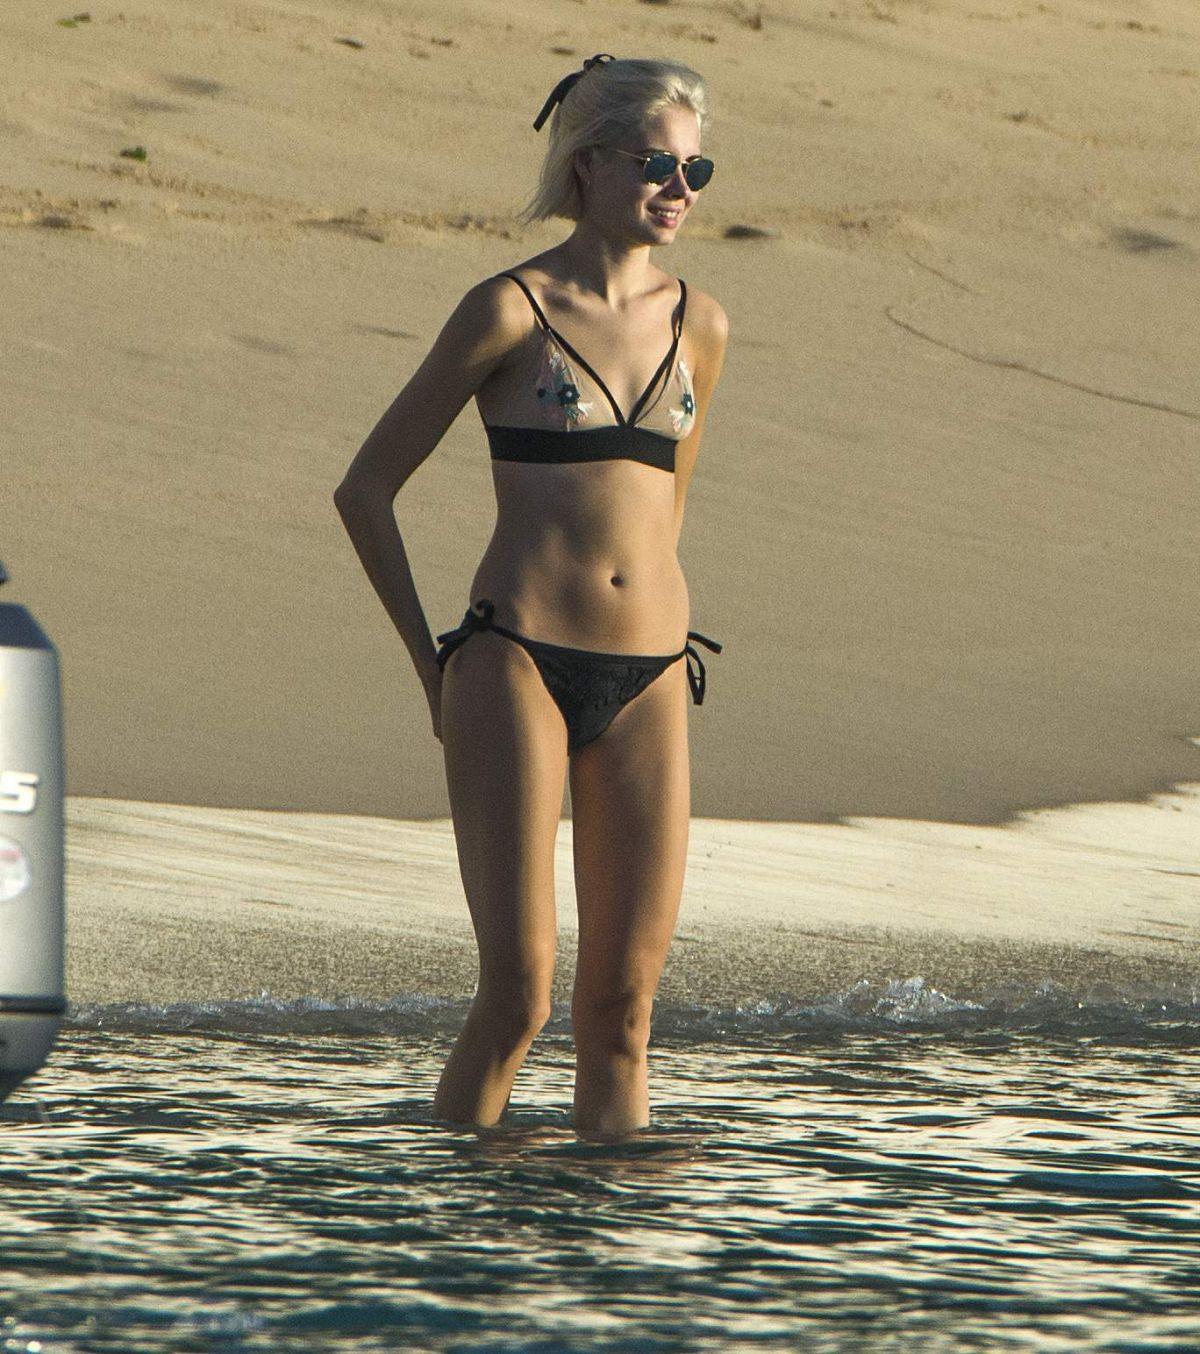 Nina Nesbitt On holiday in Barbados   nina-nesbitt-on-holiday-in-barbados-_3